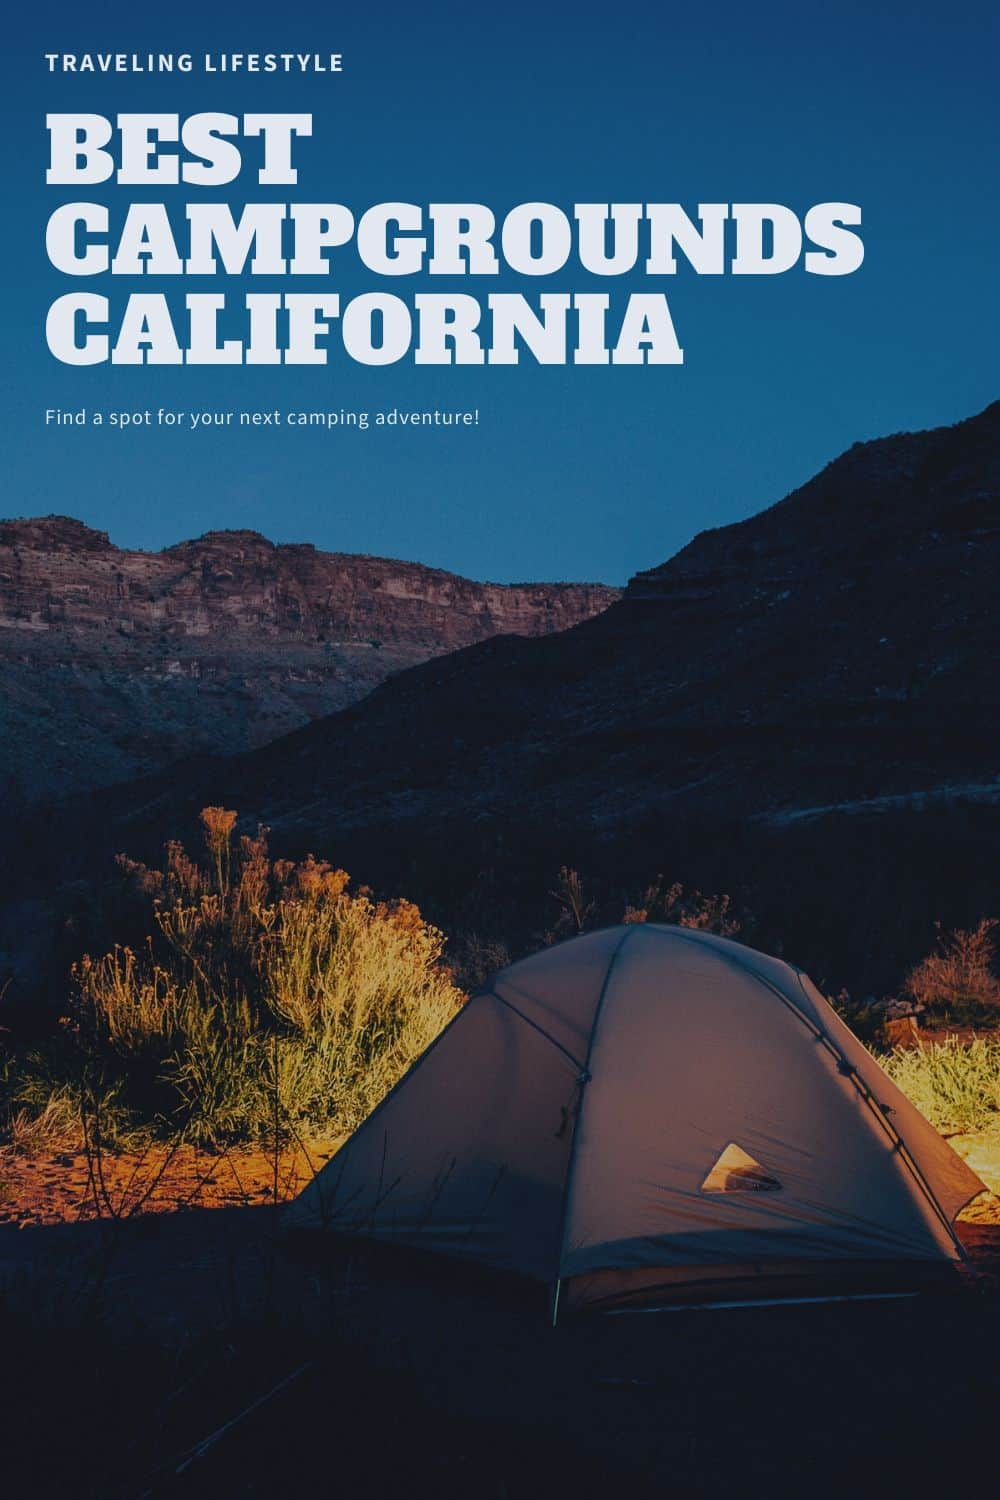 Best Campgrounds in California for Outdoor Camping